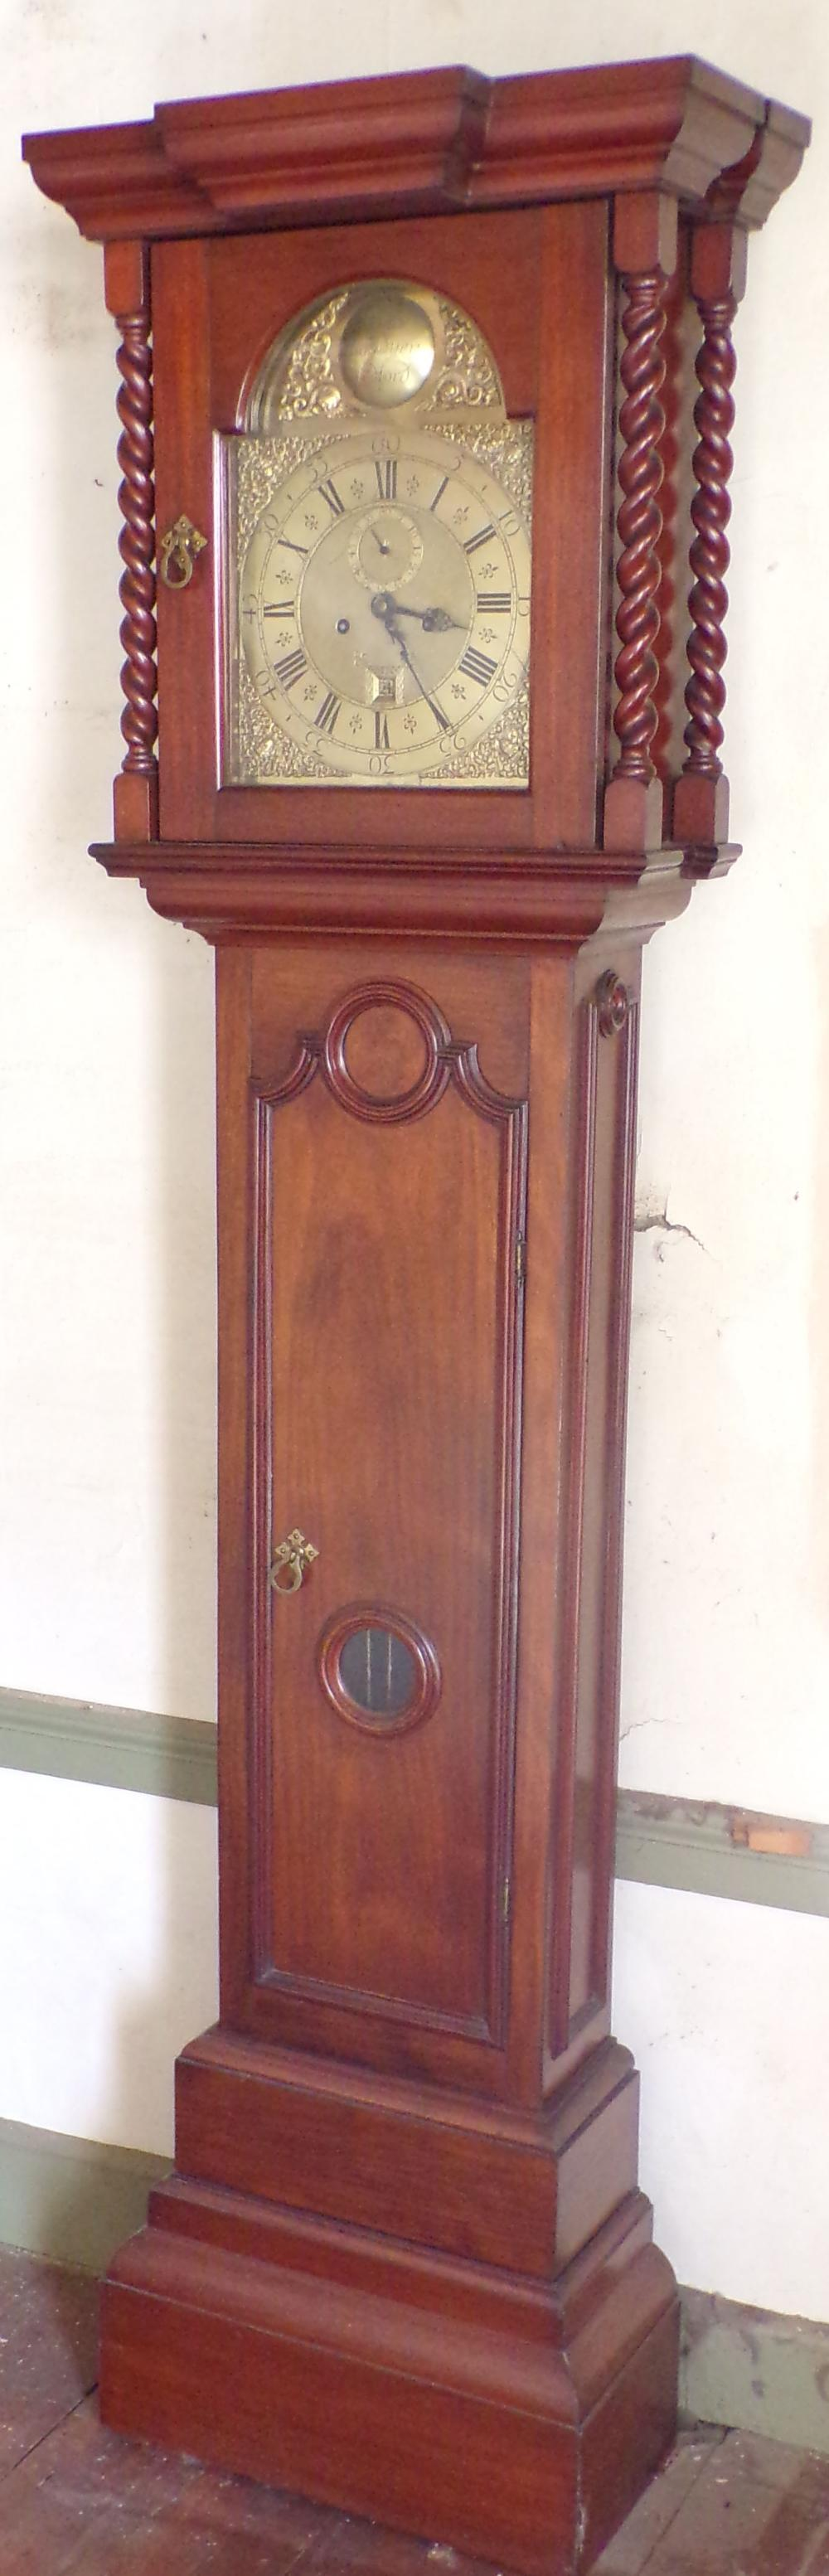 English Mahogany Tall Case Clock-Signed in Script James Goodyear